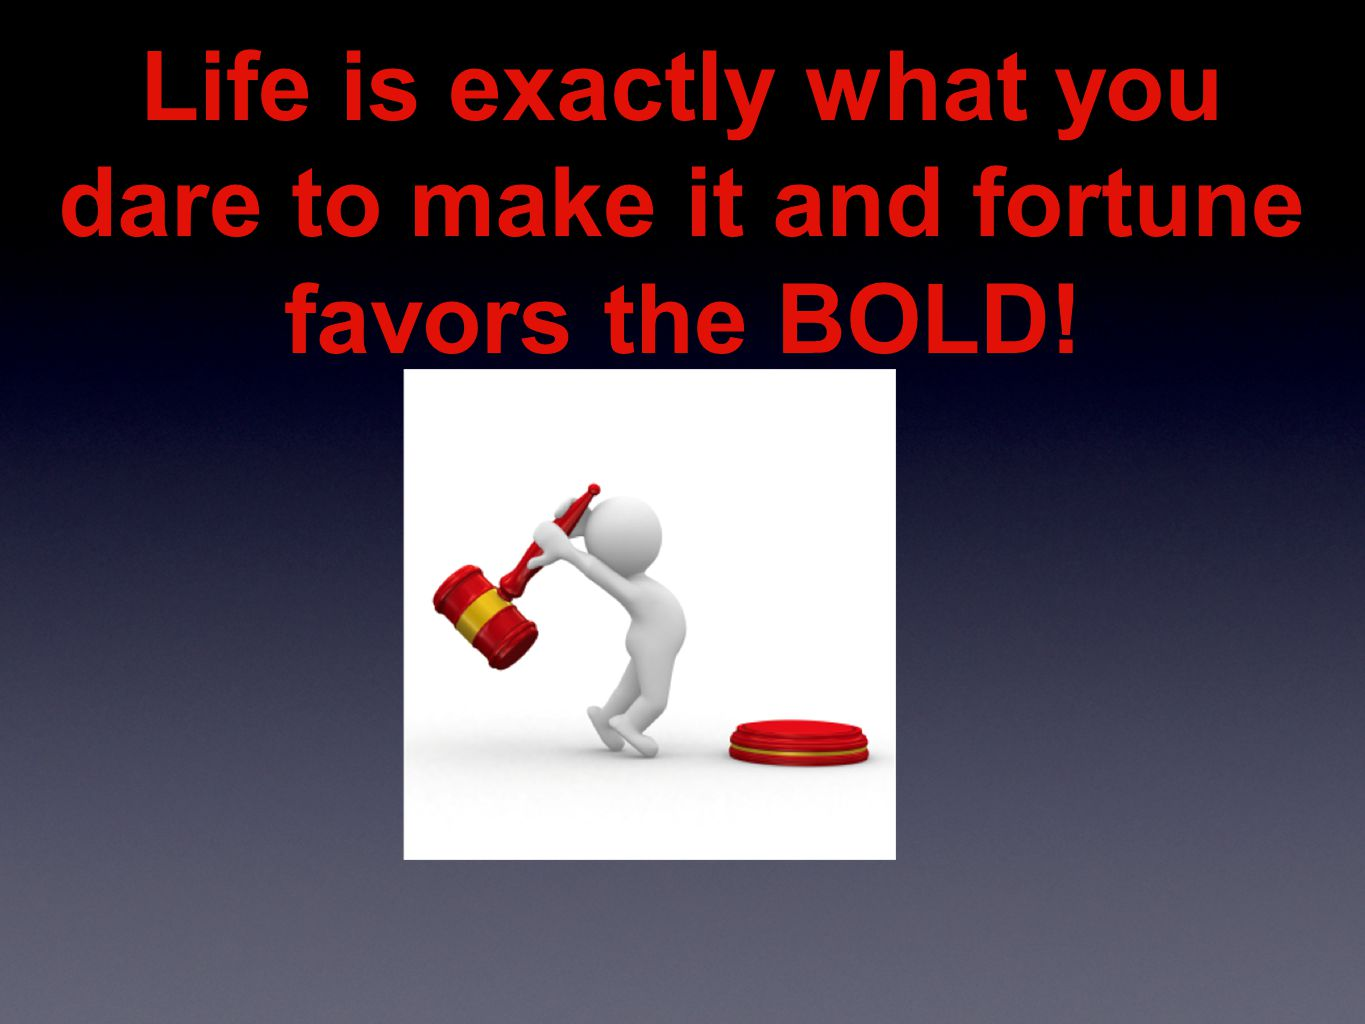 Life is exactly what you dare to make it and fortune favors the BOLD!